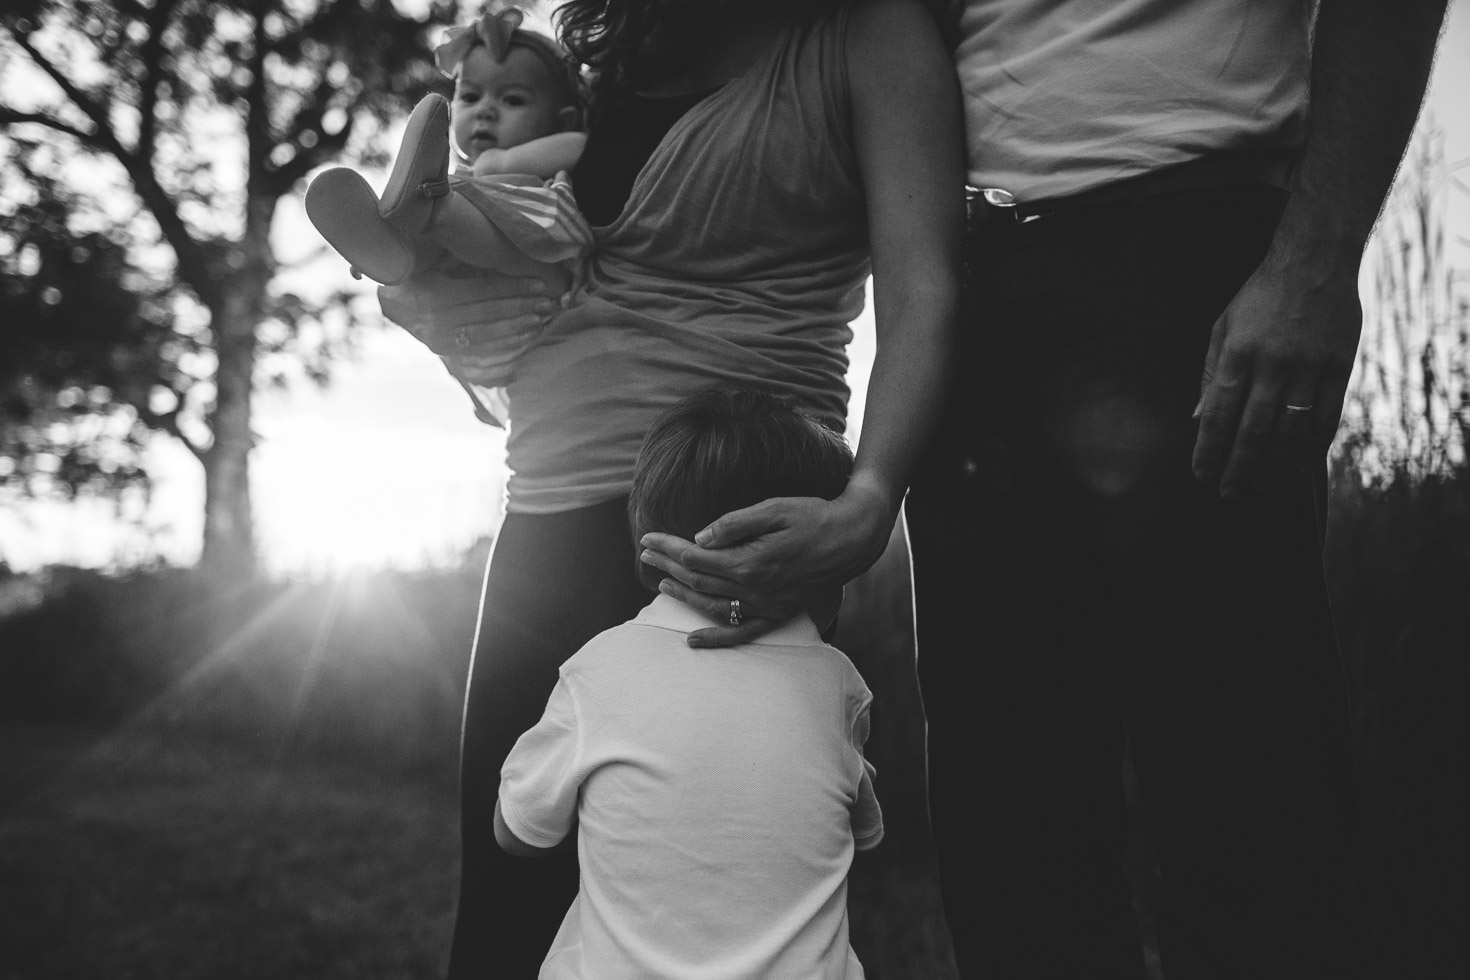 Emotional Family portrait as mother embraces sons head as she holds her daughter, backlight, black and white, documentary style